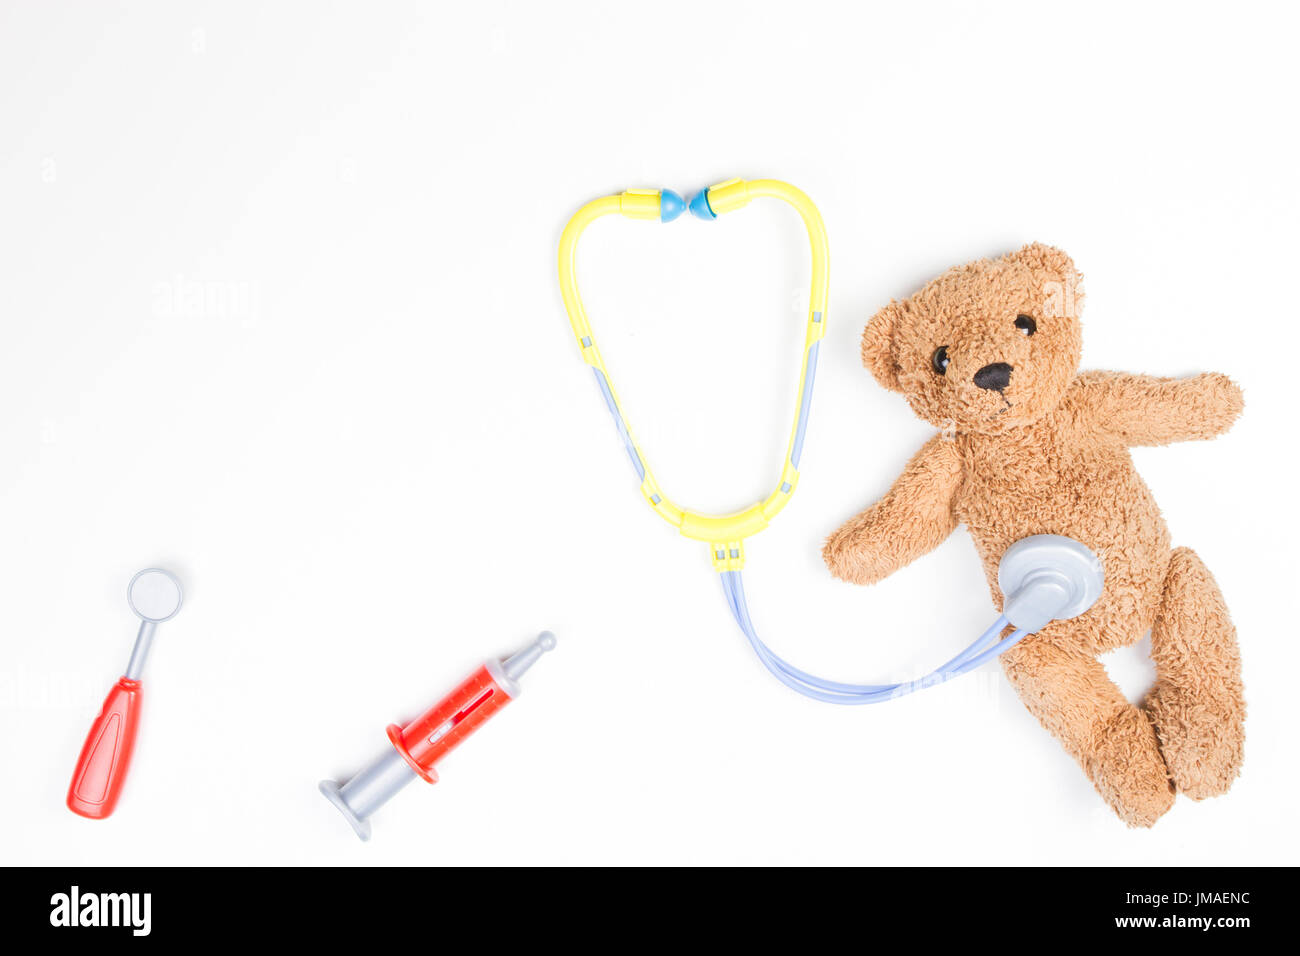 Therapy Toy Stock Photos & Therapy Toy Stock Images